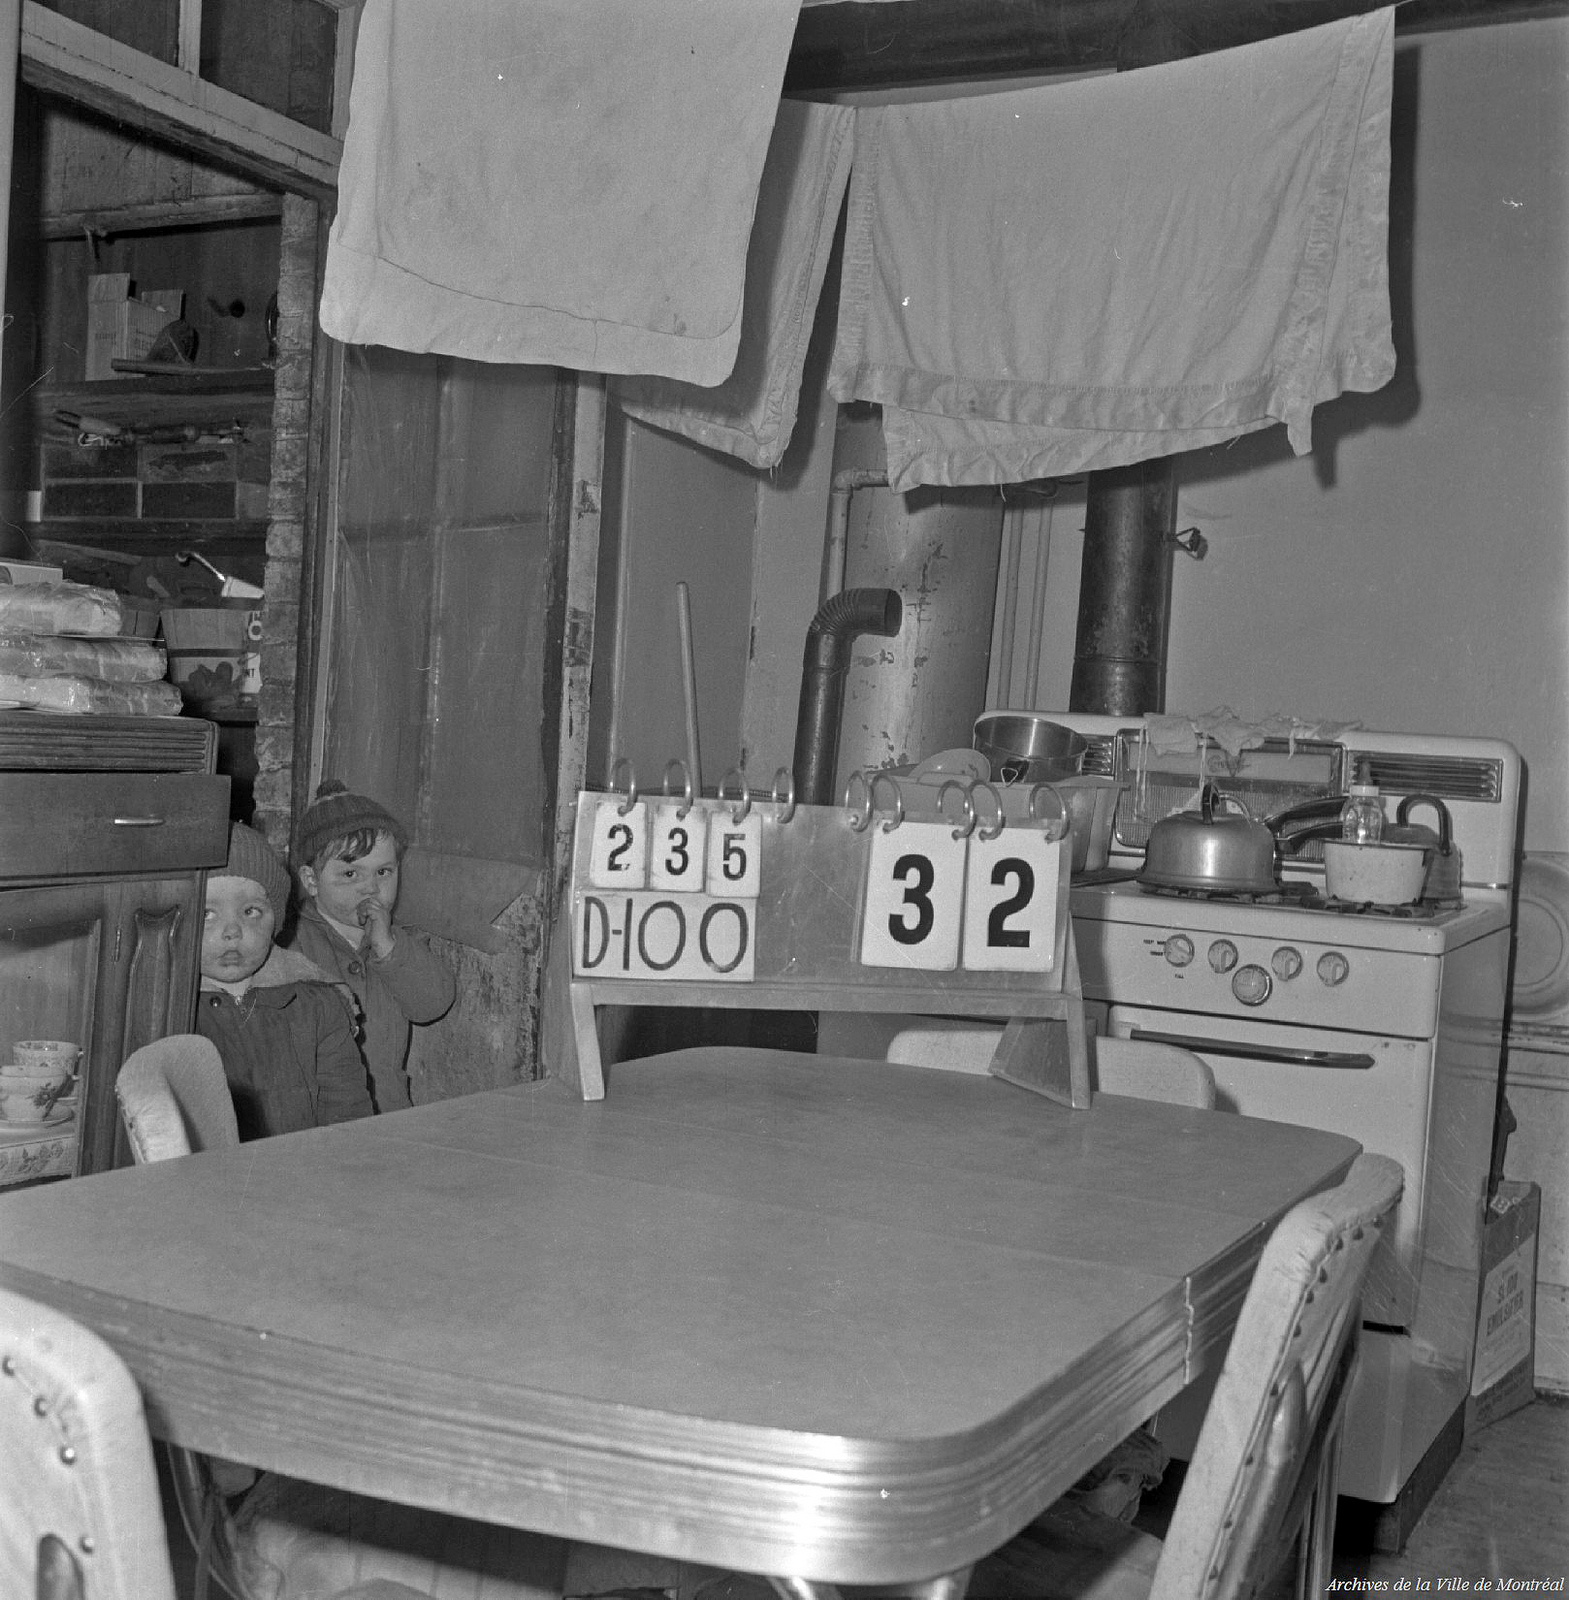 Two children stand in a kitchen with blankets hanging on laundry lines.